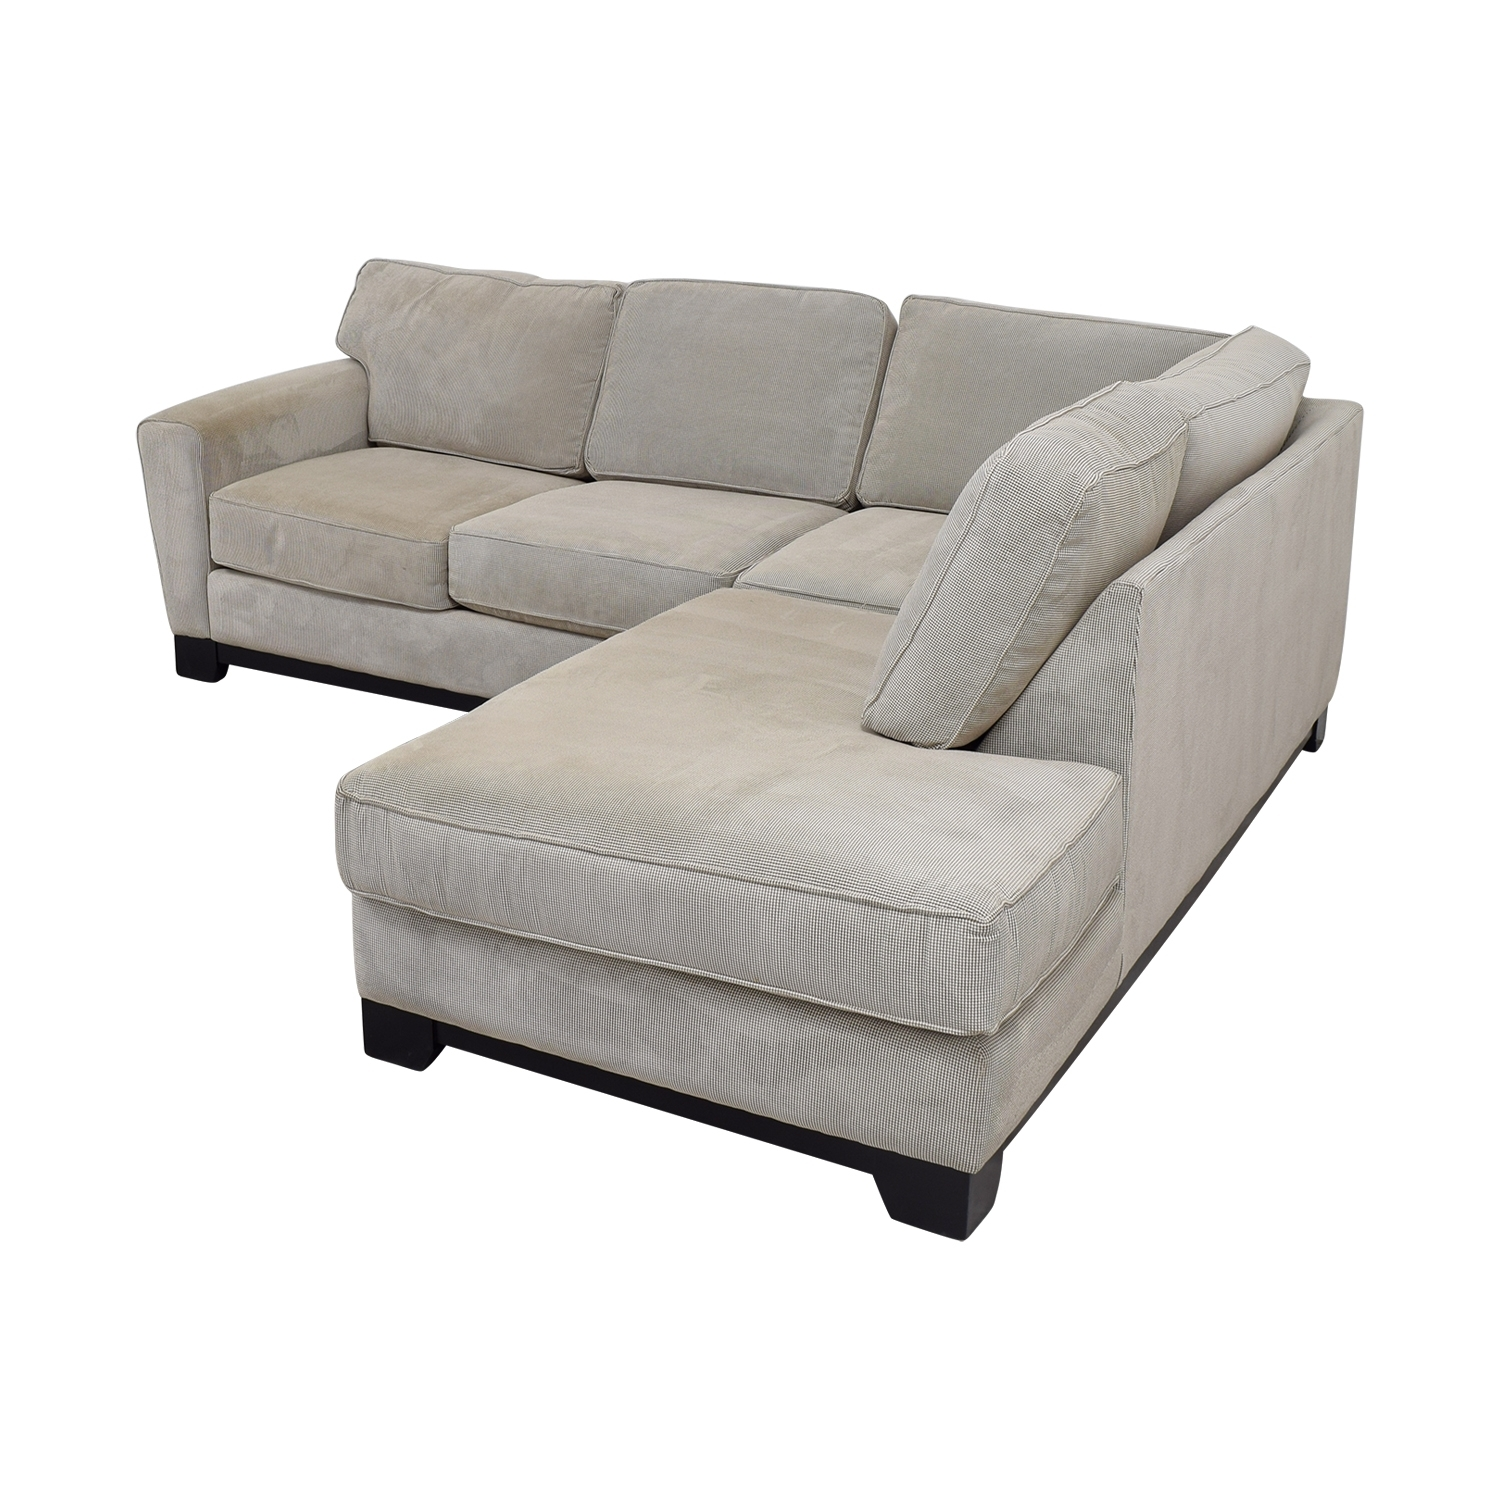 84% Off - Jordan's Furniture Jordan's Furniture Beige L-Shaped throughout Jordans Sectional Sofas